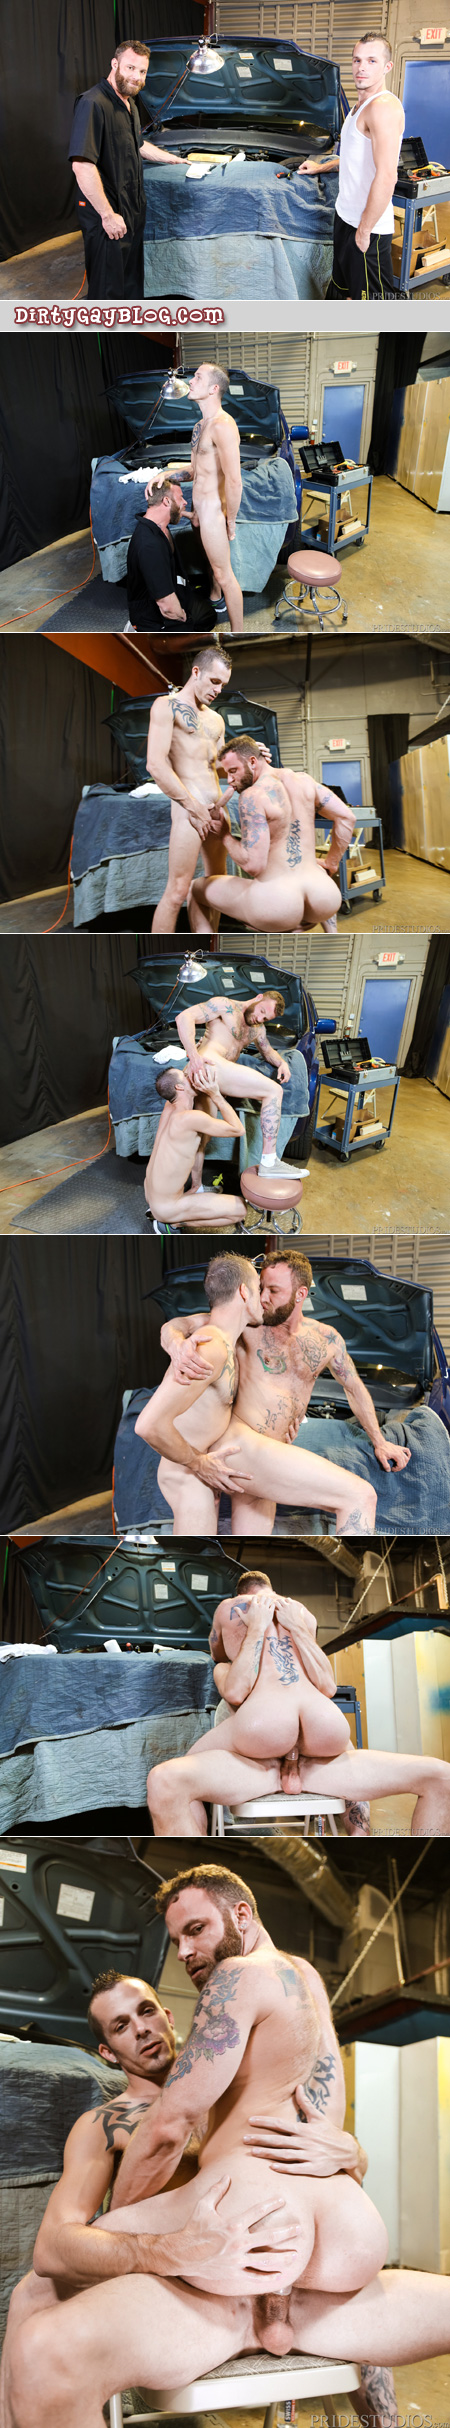 Muscle cub mechanic being fucked by a slim tattooed guy with a big white dick.